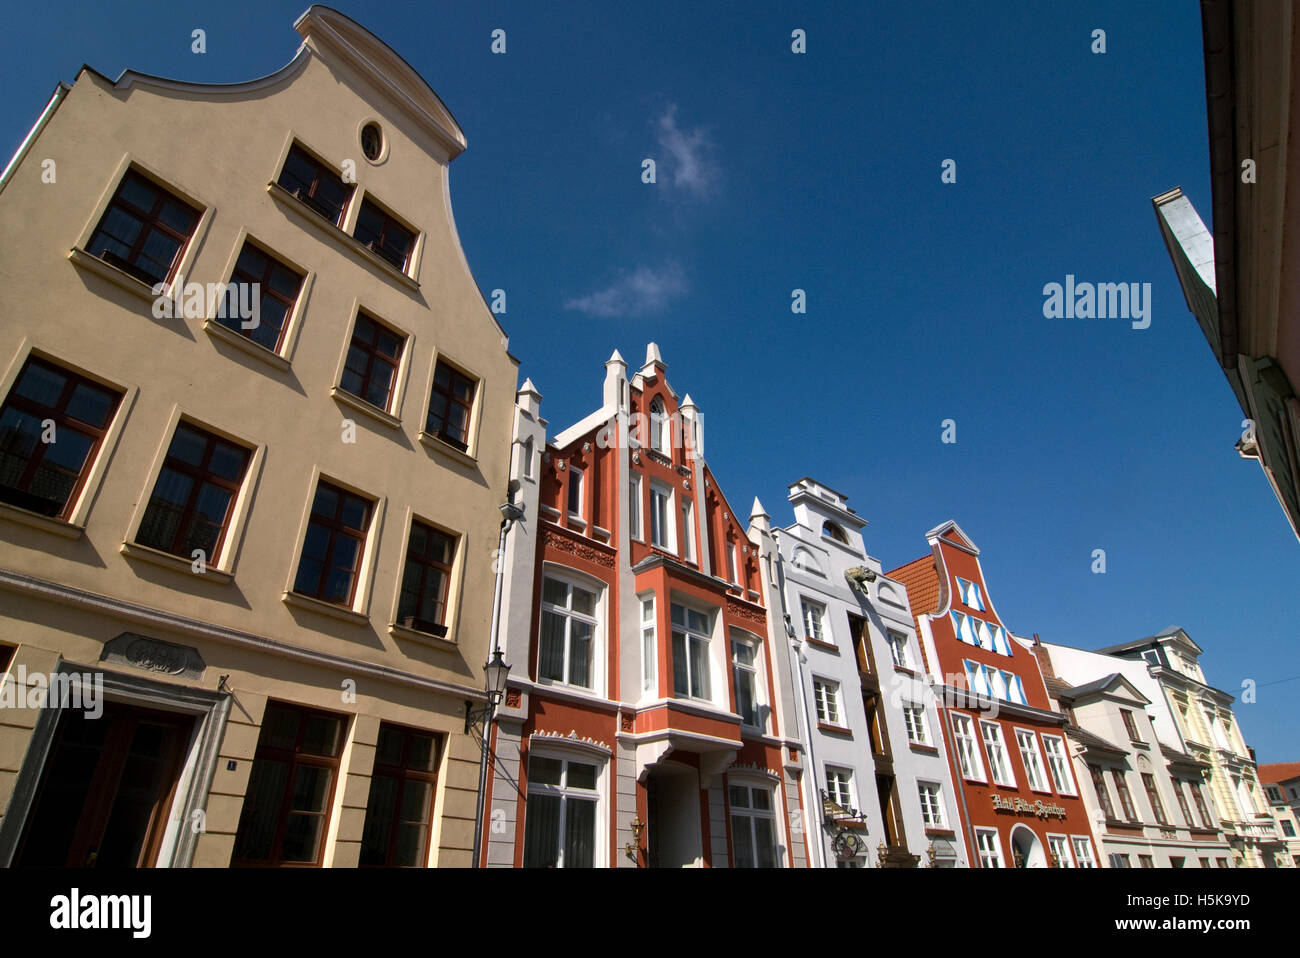 Historic buildings in Wismar, Mecklenburg-Western Pomerania - Stock Image